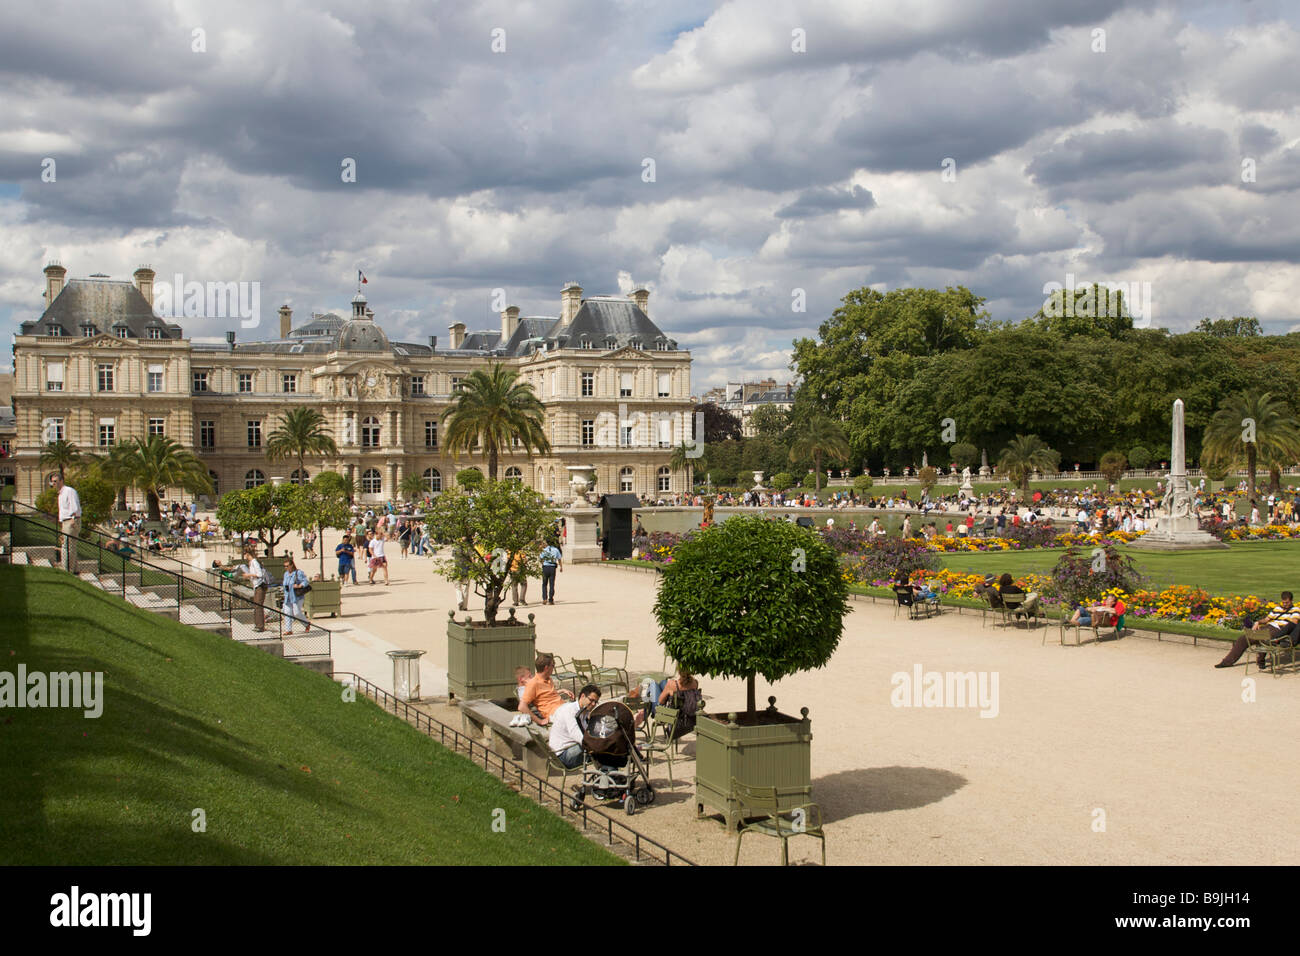 Looking to the Palais du Luxembourg in the Jardin du Luxembourg as people enjoy the public space in Paris France Stock Photo